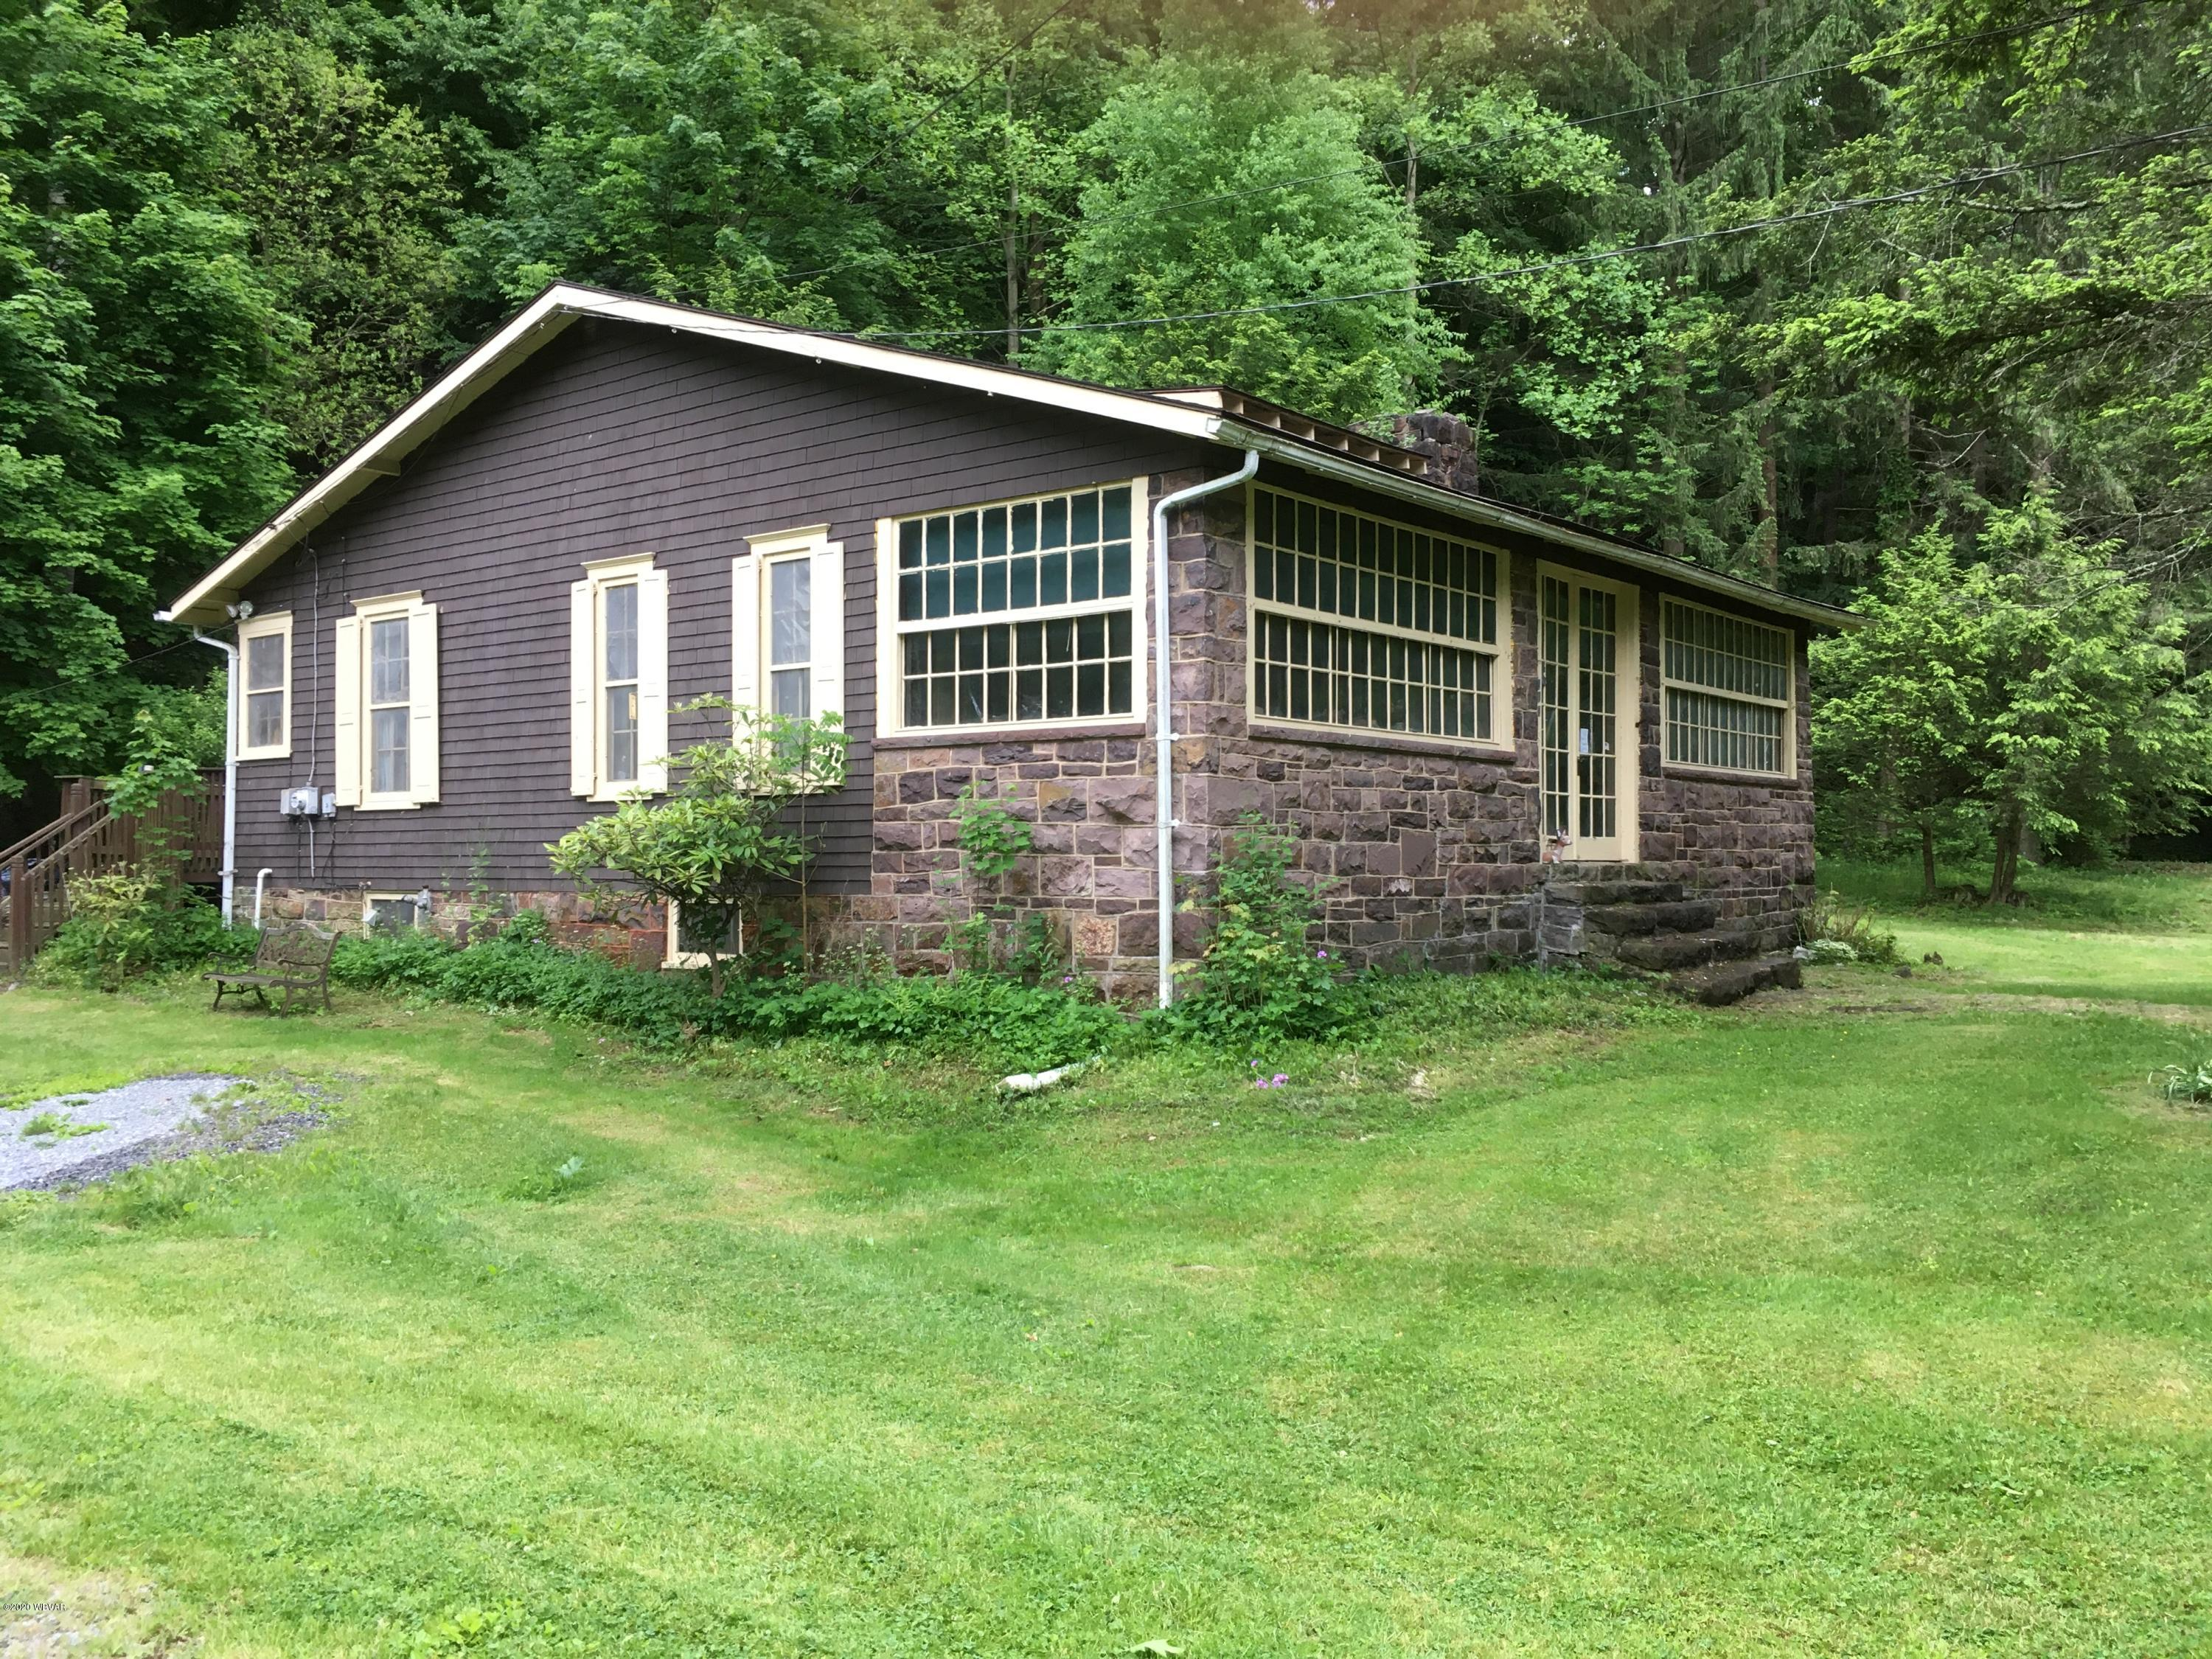 401 VALLEY STREET, S. Williamsport, PA 17702, 2 Bedrooms Bedrooms, ,1 BathroomBathrooms,Residential,For sale,VALLEY,WB-90210